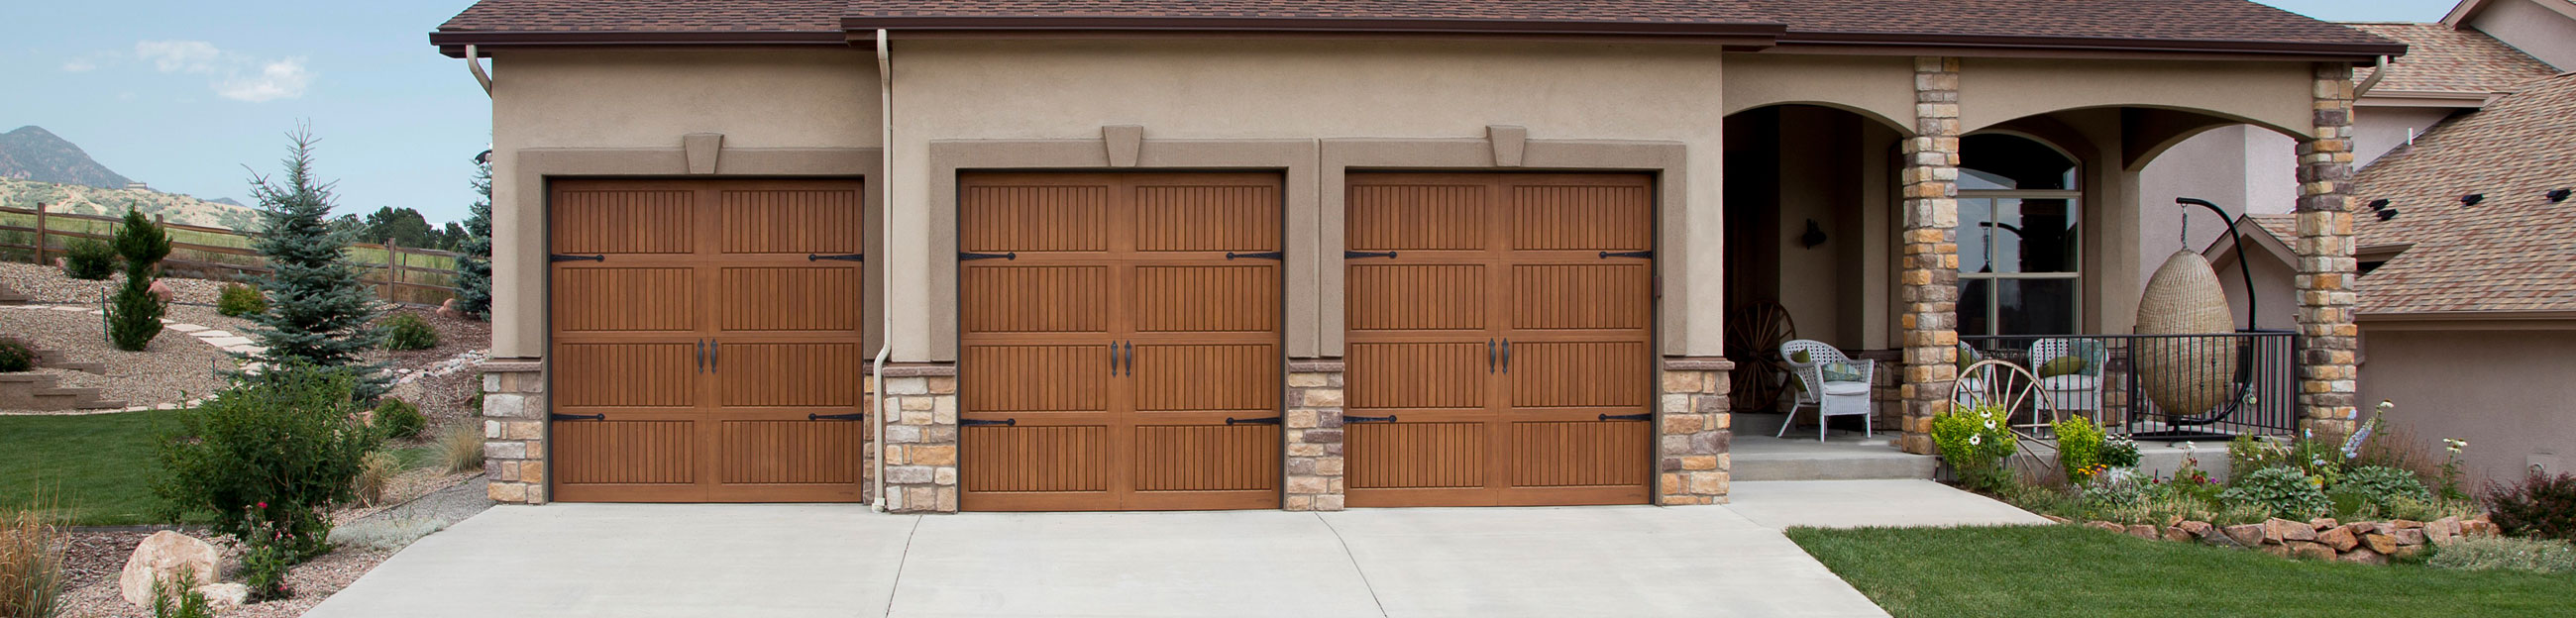 Overhead Door Company Of Fargo